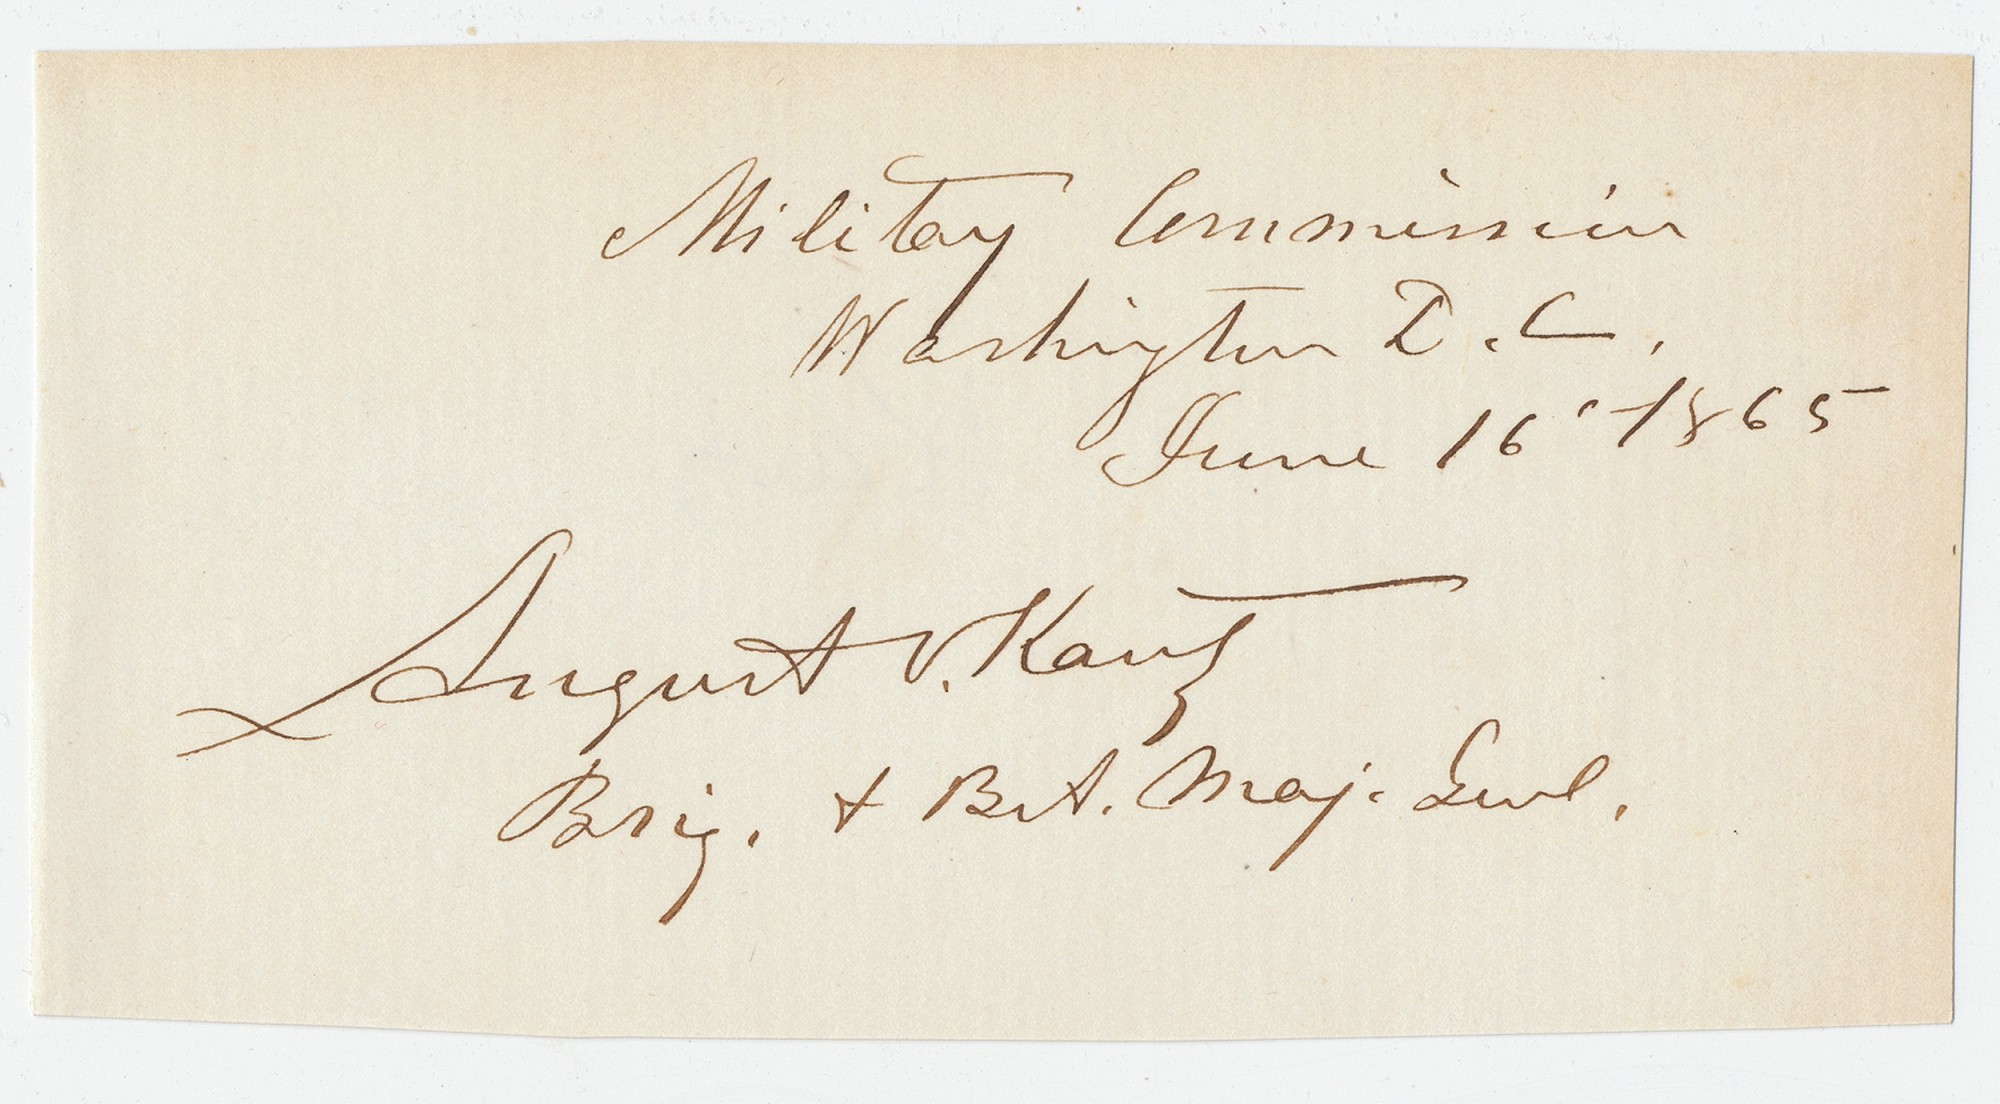 AUTOGRAPH OF A MEMBER OF THE LINCOLN ASSASSINATION COMMISSION